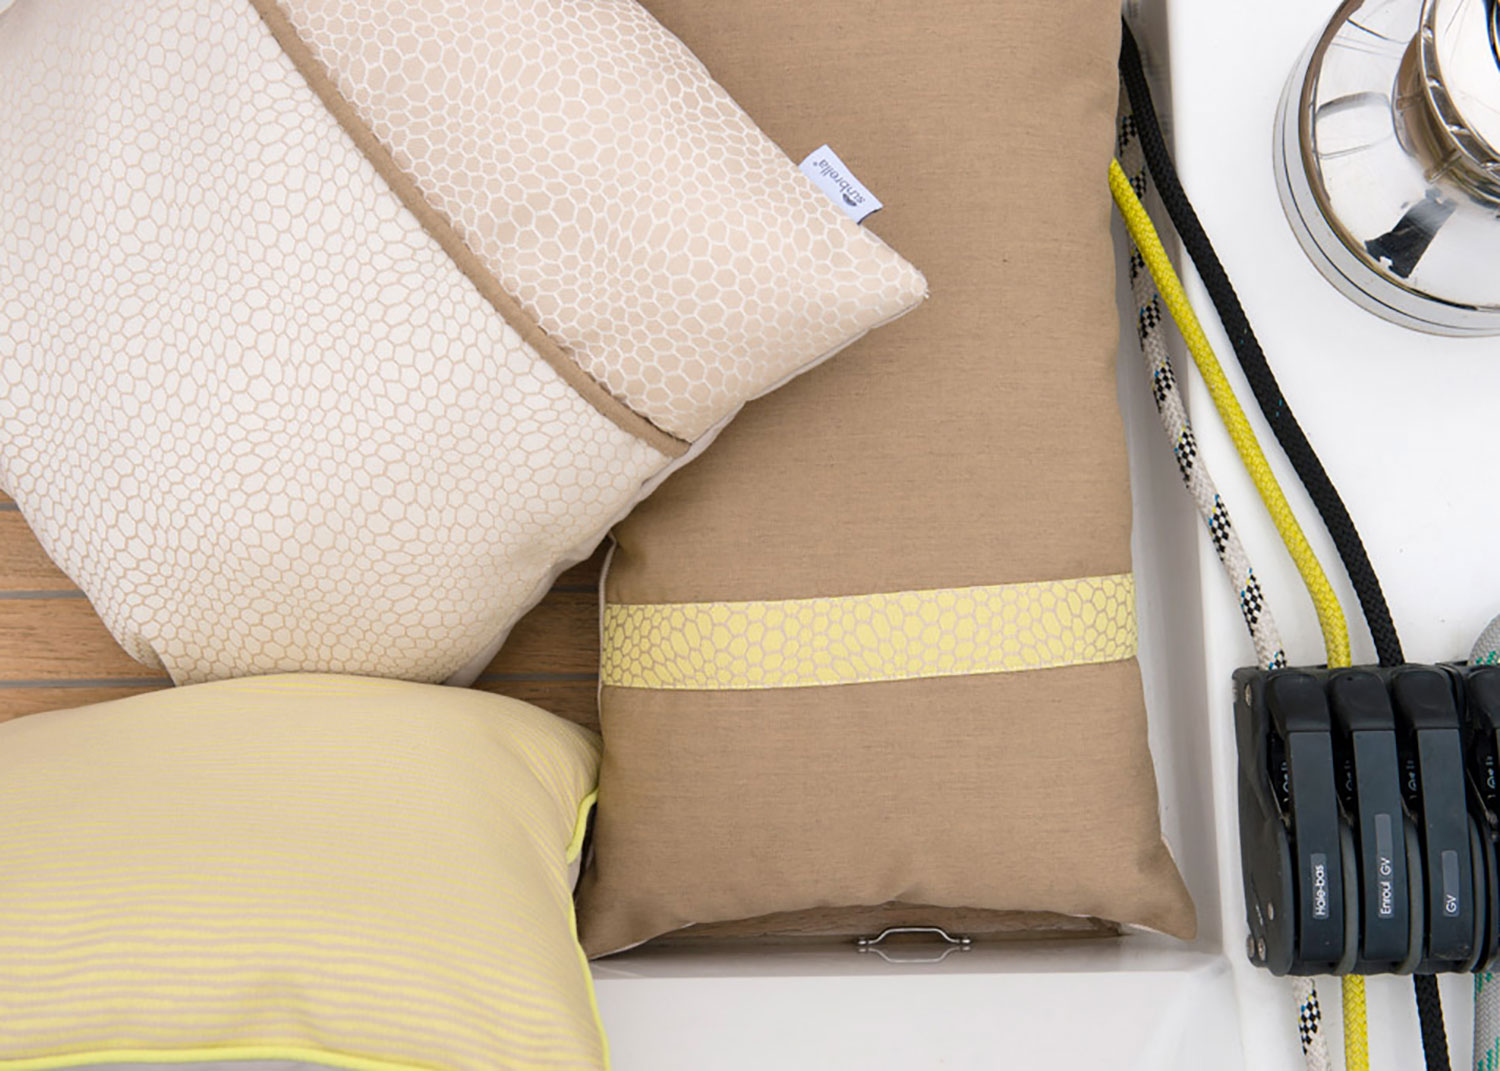 Beige and yellow pillows made using Sunbrella fabrics are arranged on a boat deck.